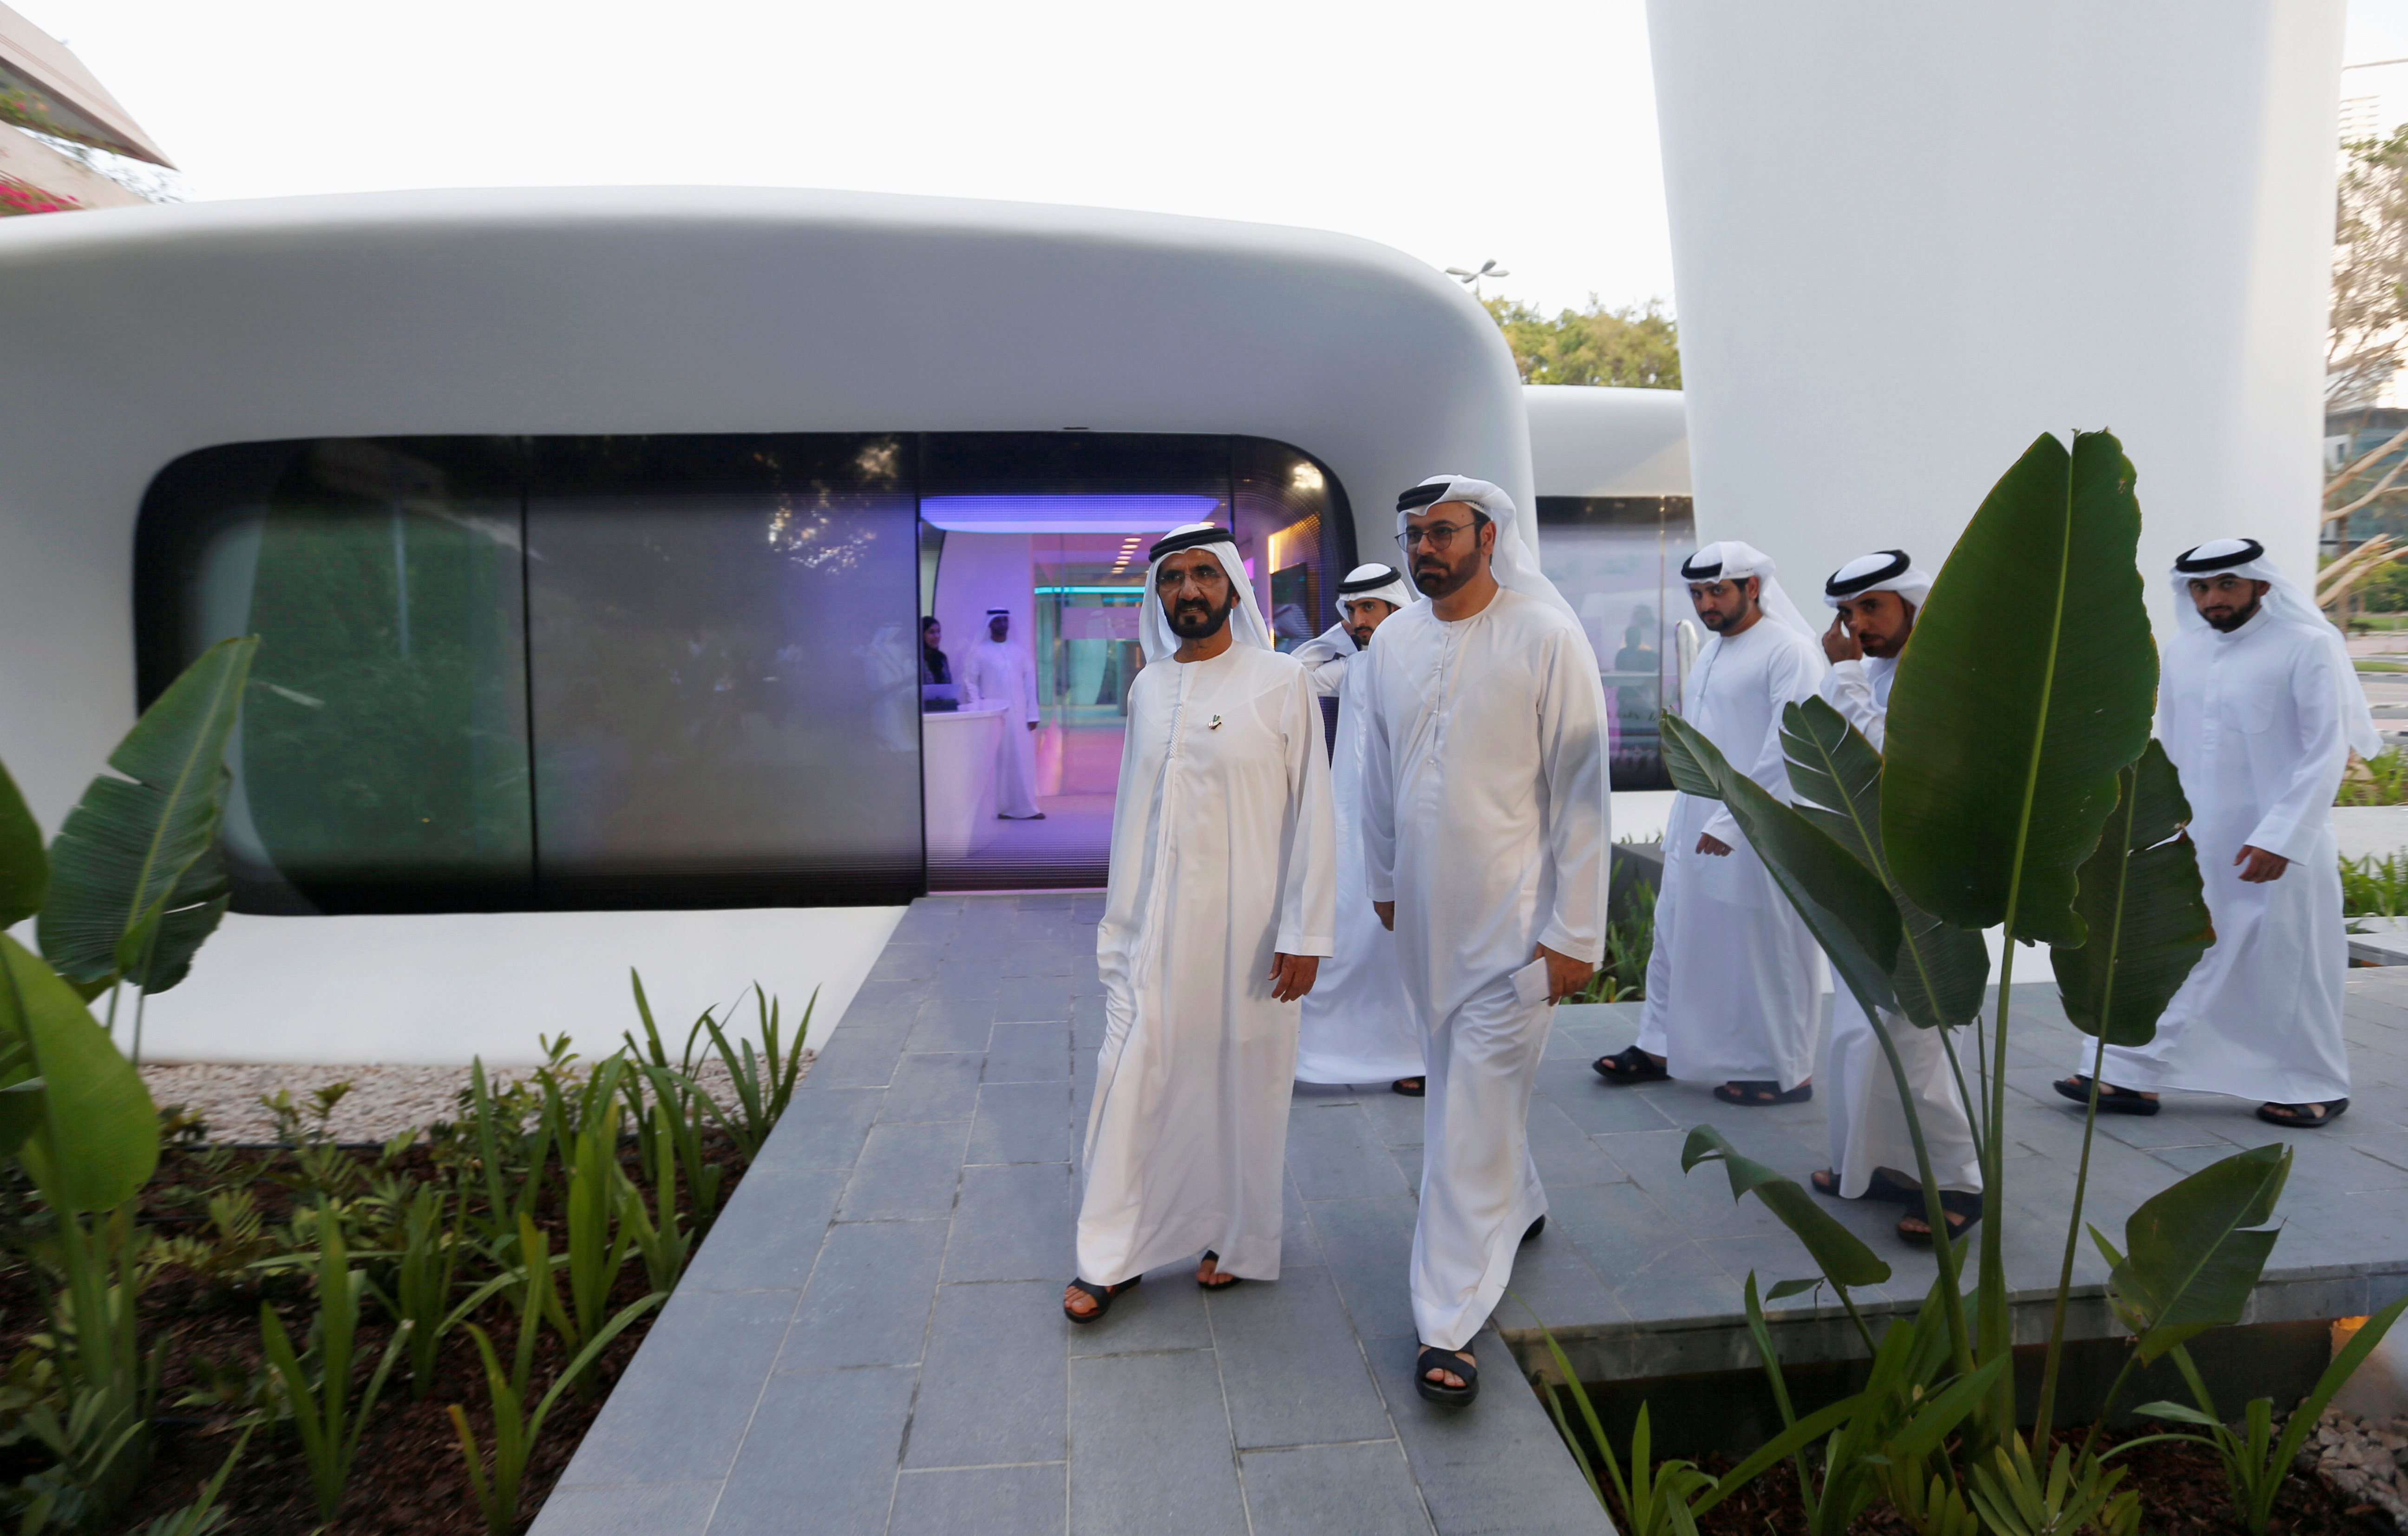 D Printing Exhibition Uae : Pictures world s first d printed building in dubai